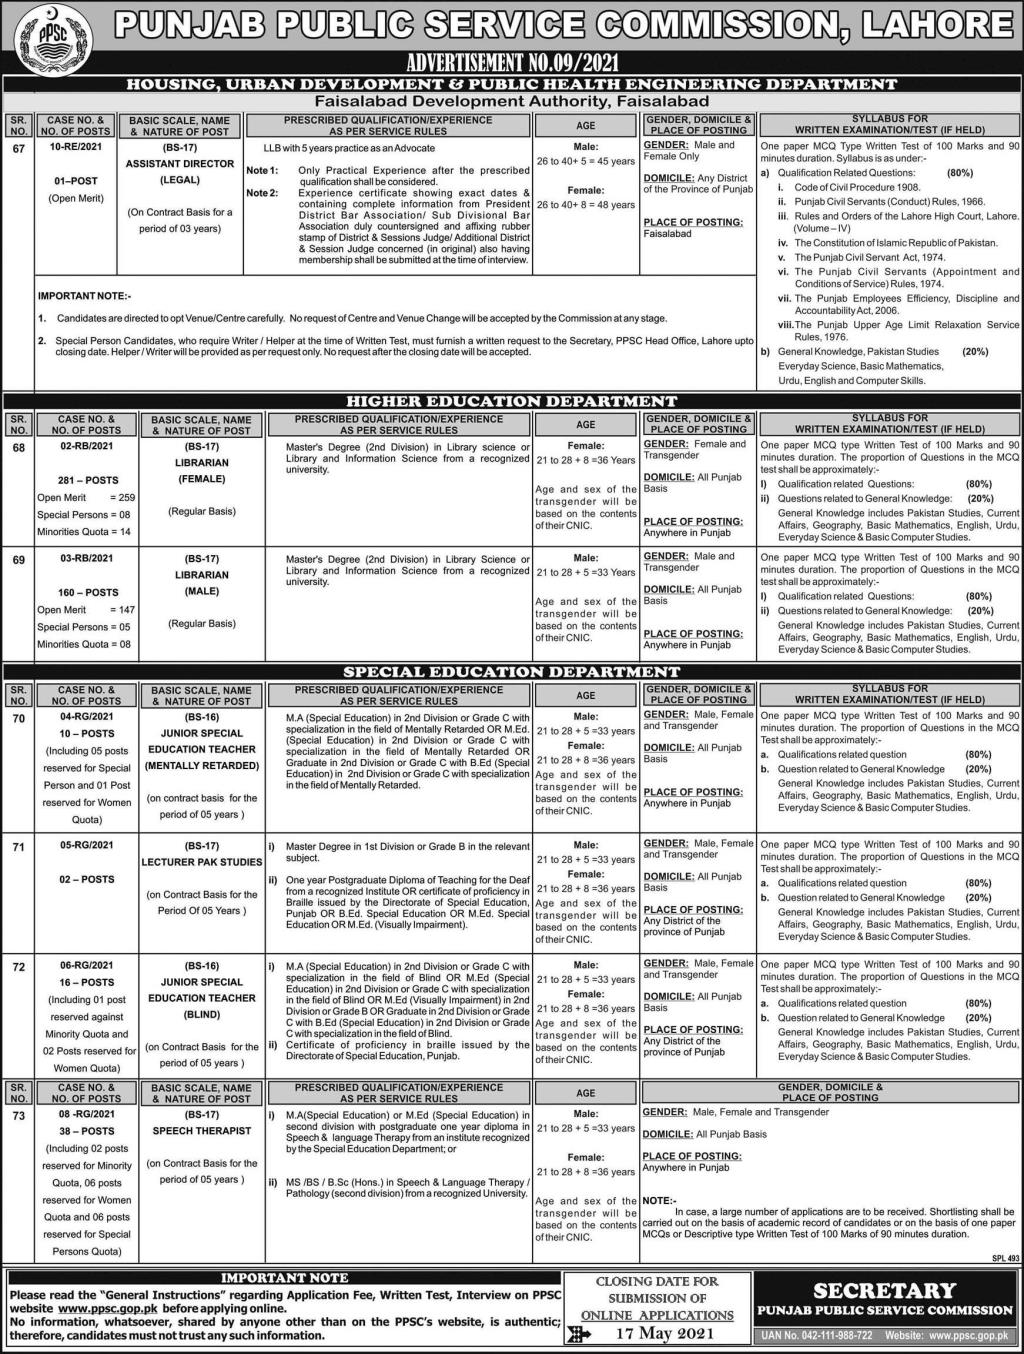 This page is about Punjab Public Service Commission (PPSC) Jobs May 2021 (508 Posts) Latest Advertisment. Punjab Public Service Commission (PPSC) invites applications for the posts announced on a contact / permanent basis from suitable candidates for the following positions such as Assistant Director (Legal), Librarian Female, Librarian Male, Junior Special Education Teacher, Lecturer Pak Studies, Speech Therapist. These vacancies are published in Express Newspaper, one of the best News paper of Pakistan. This advertisement has pulibhsed on 02 May 2021 and Last Date to apply is 17 May 2021.